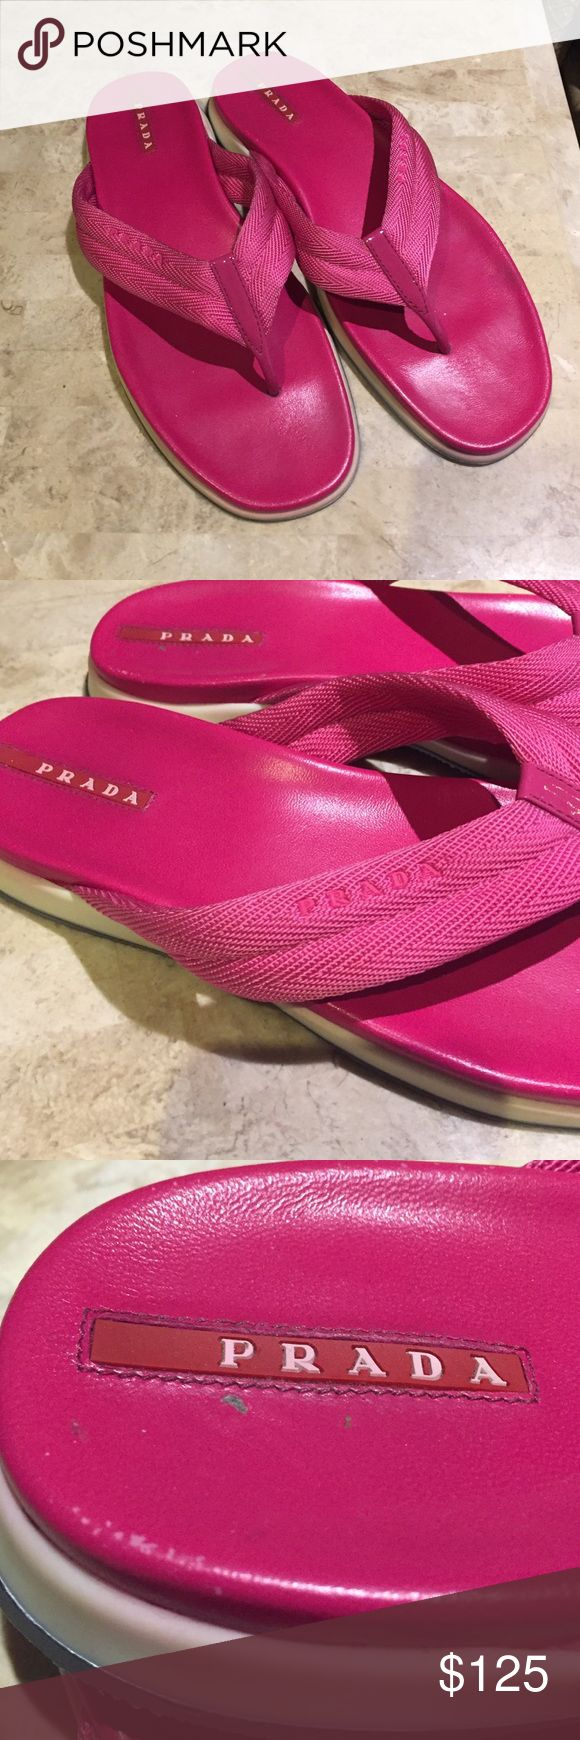 Pink Prada flip flops 38 no box $125 firm Pink Prada flip flops 38 no box $125 firm. Good condition. Prada Shoes Sandals